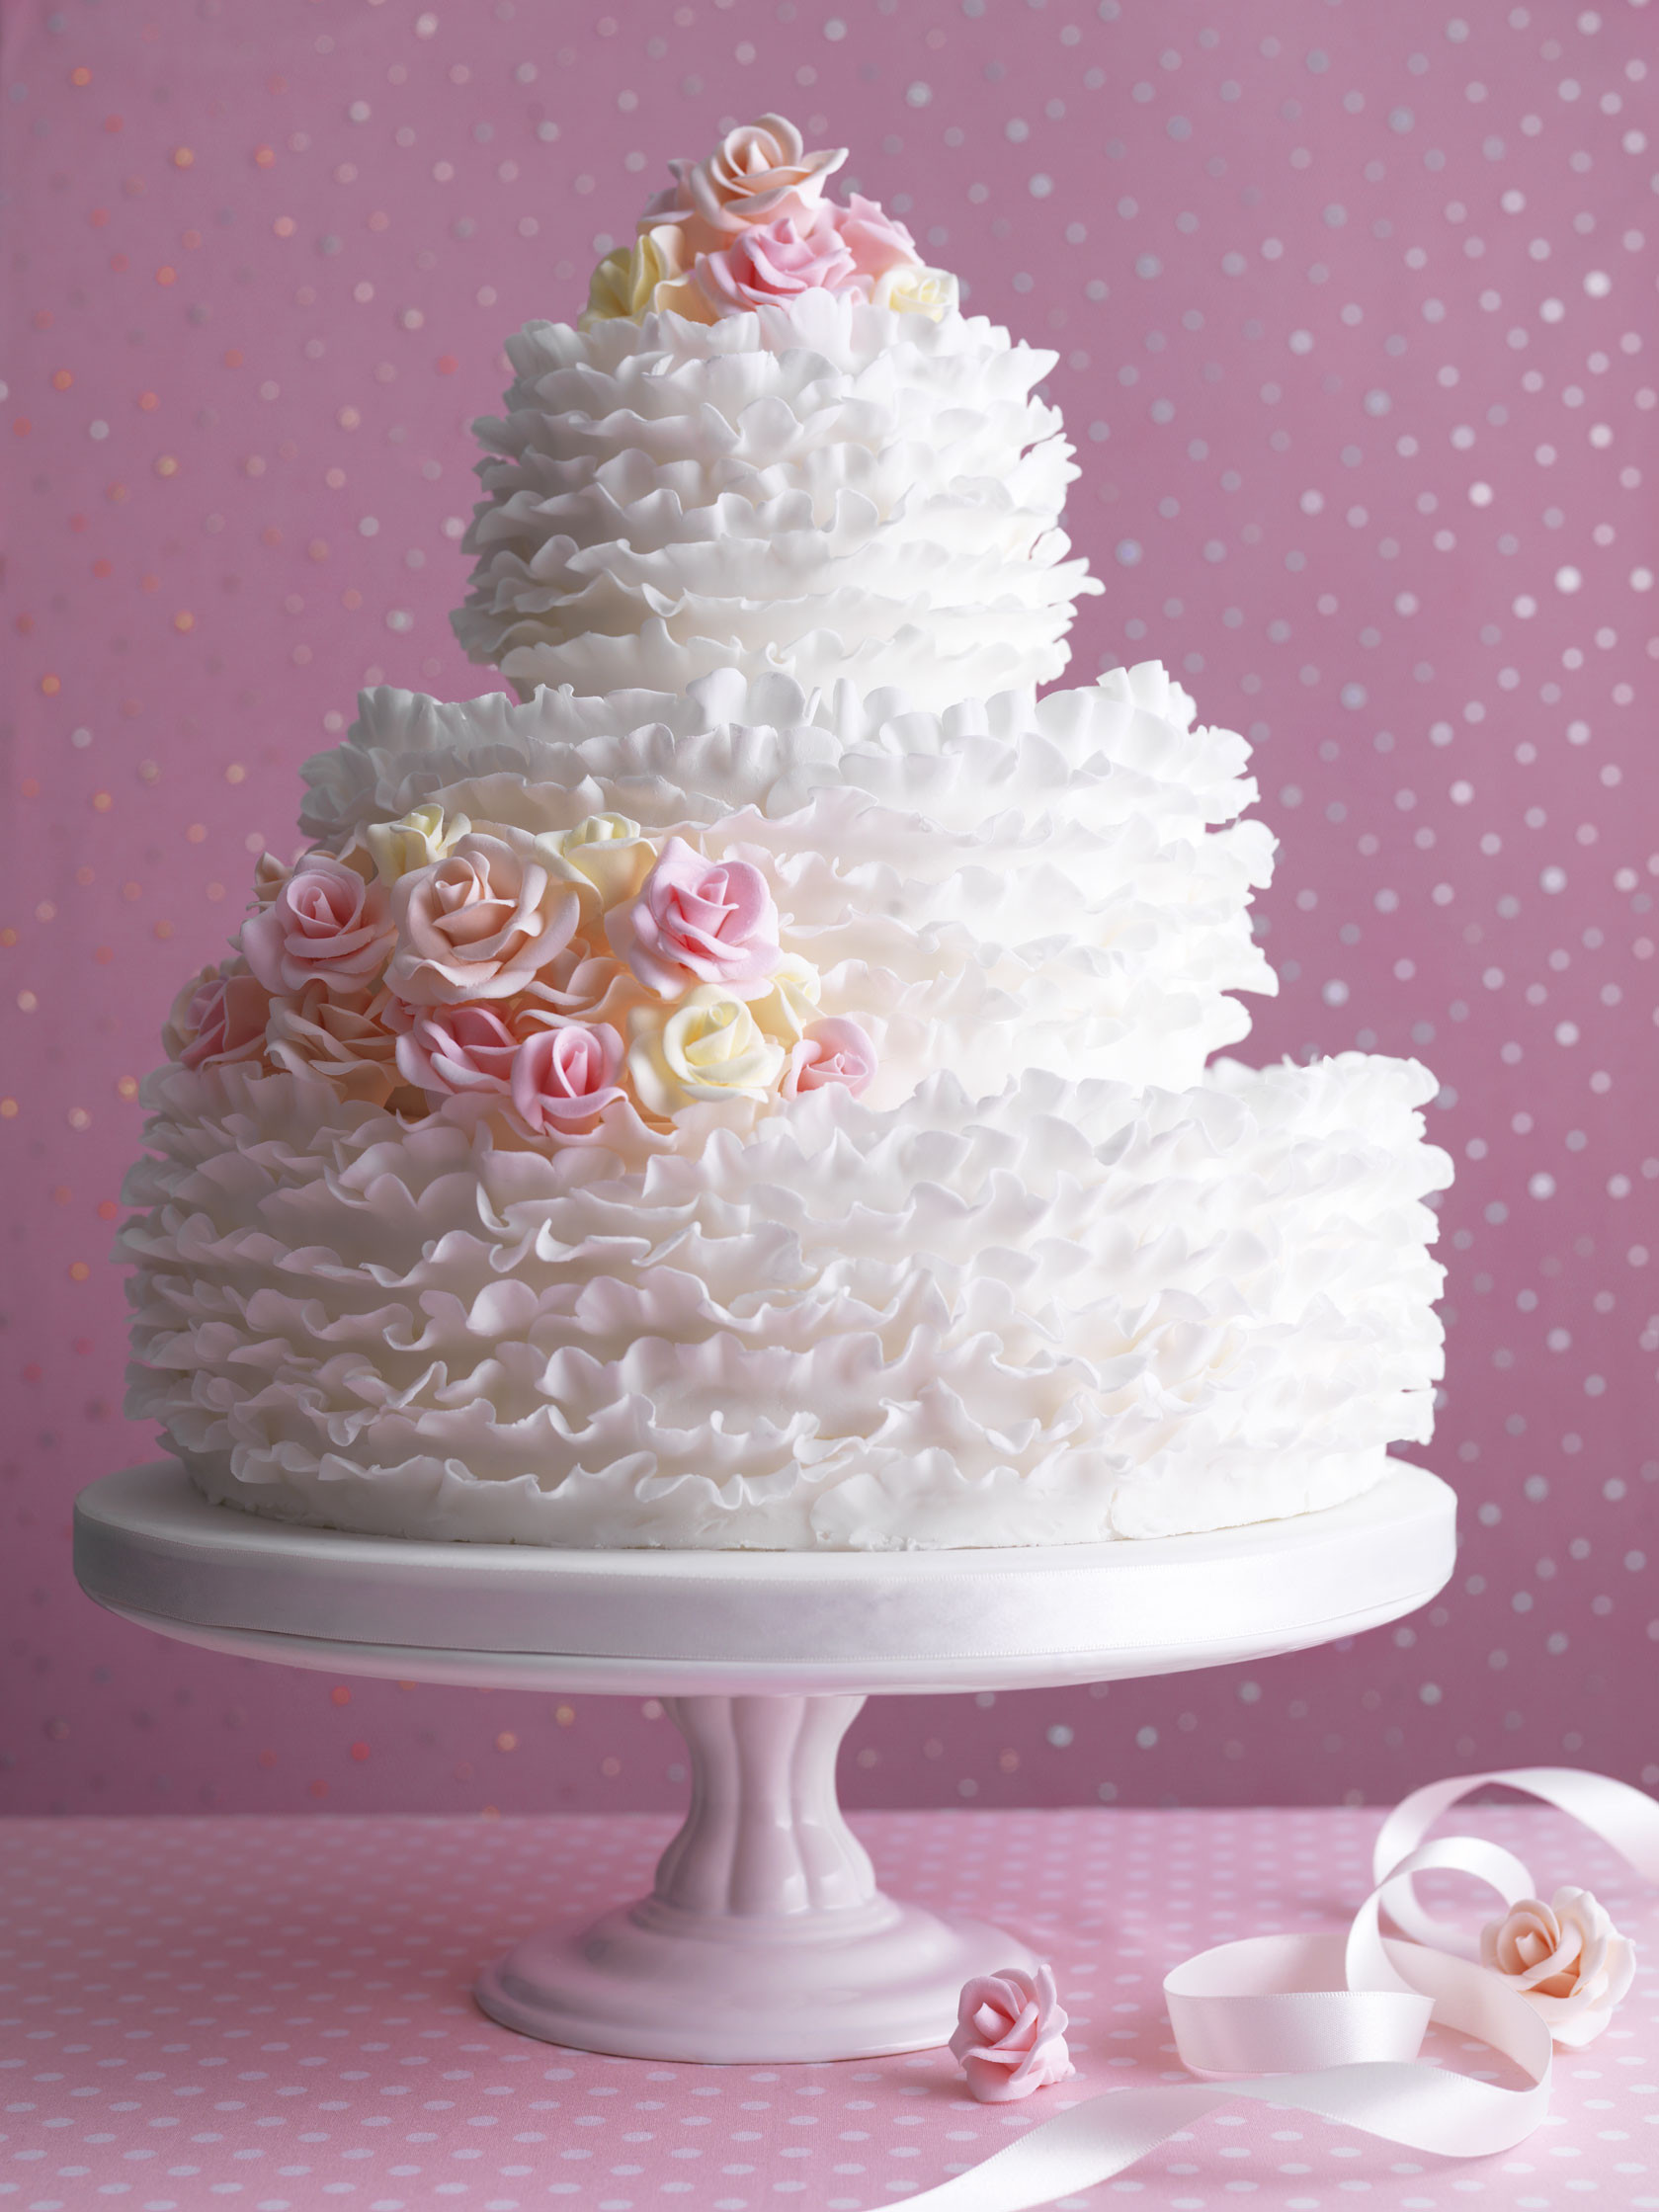 Make Wedding Cakes  How to make a wedding cake